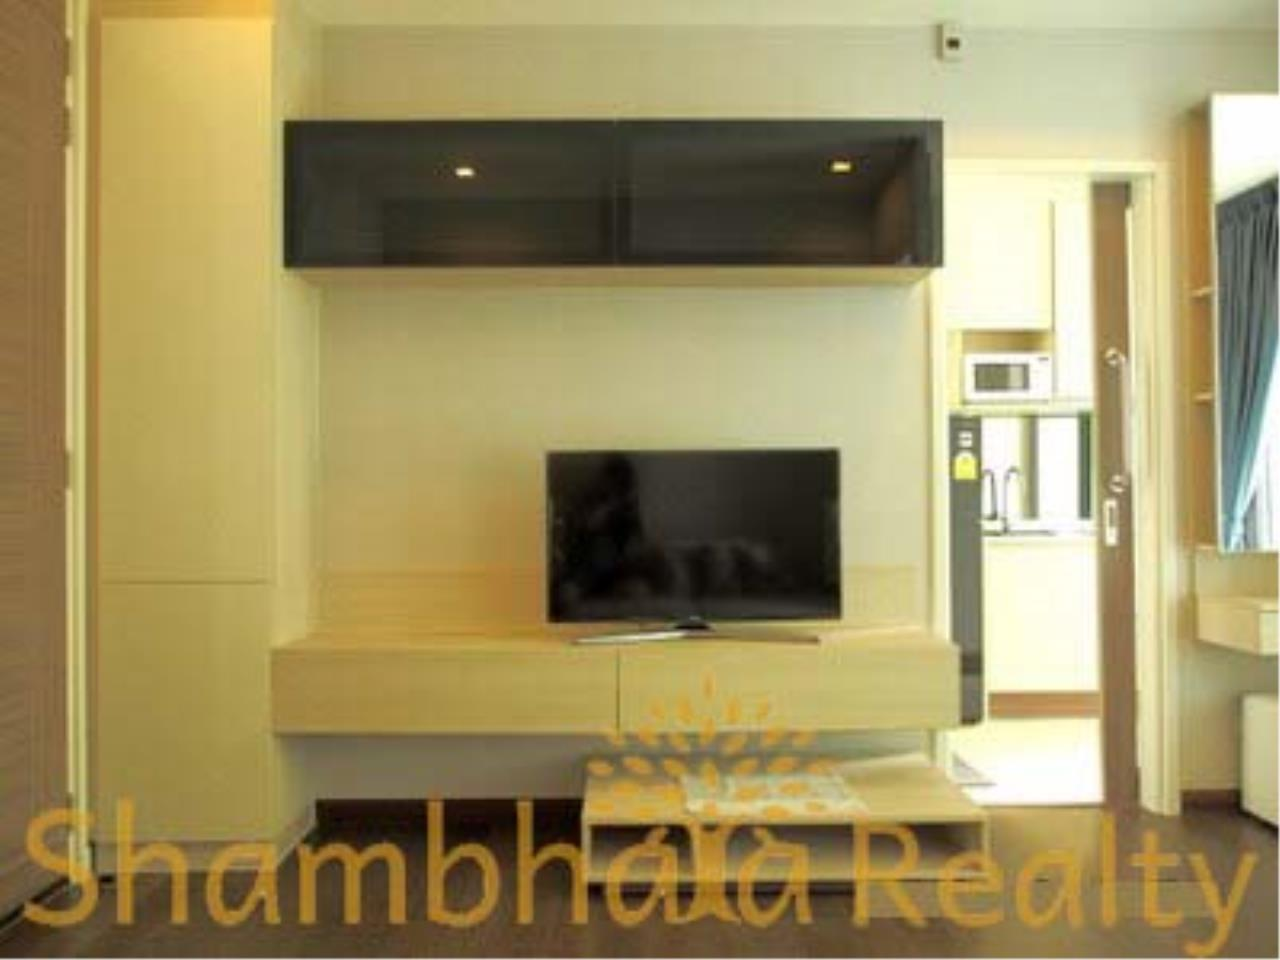 Shambhala Realty Agency's Q Asoke Condominium for Rent in Asoke-Petchaburi 9